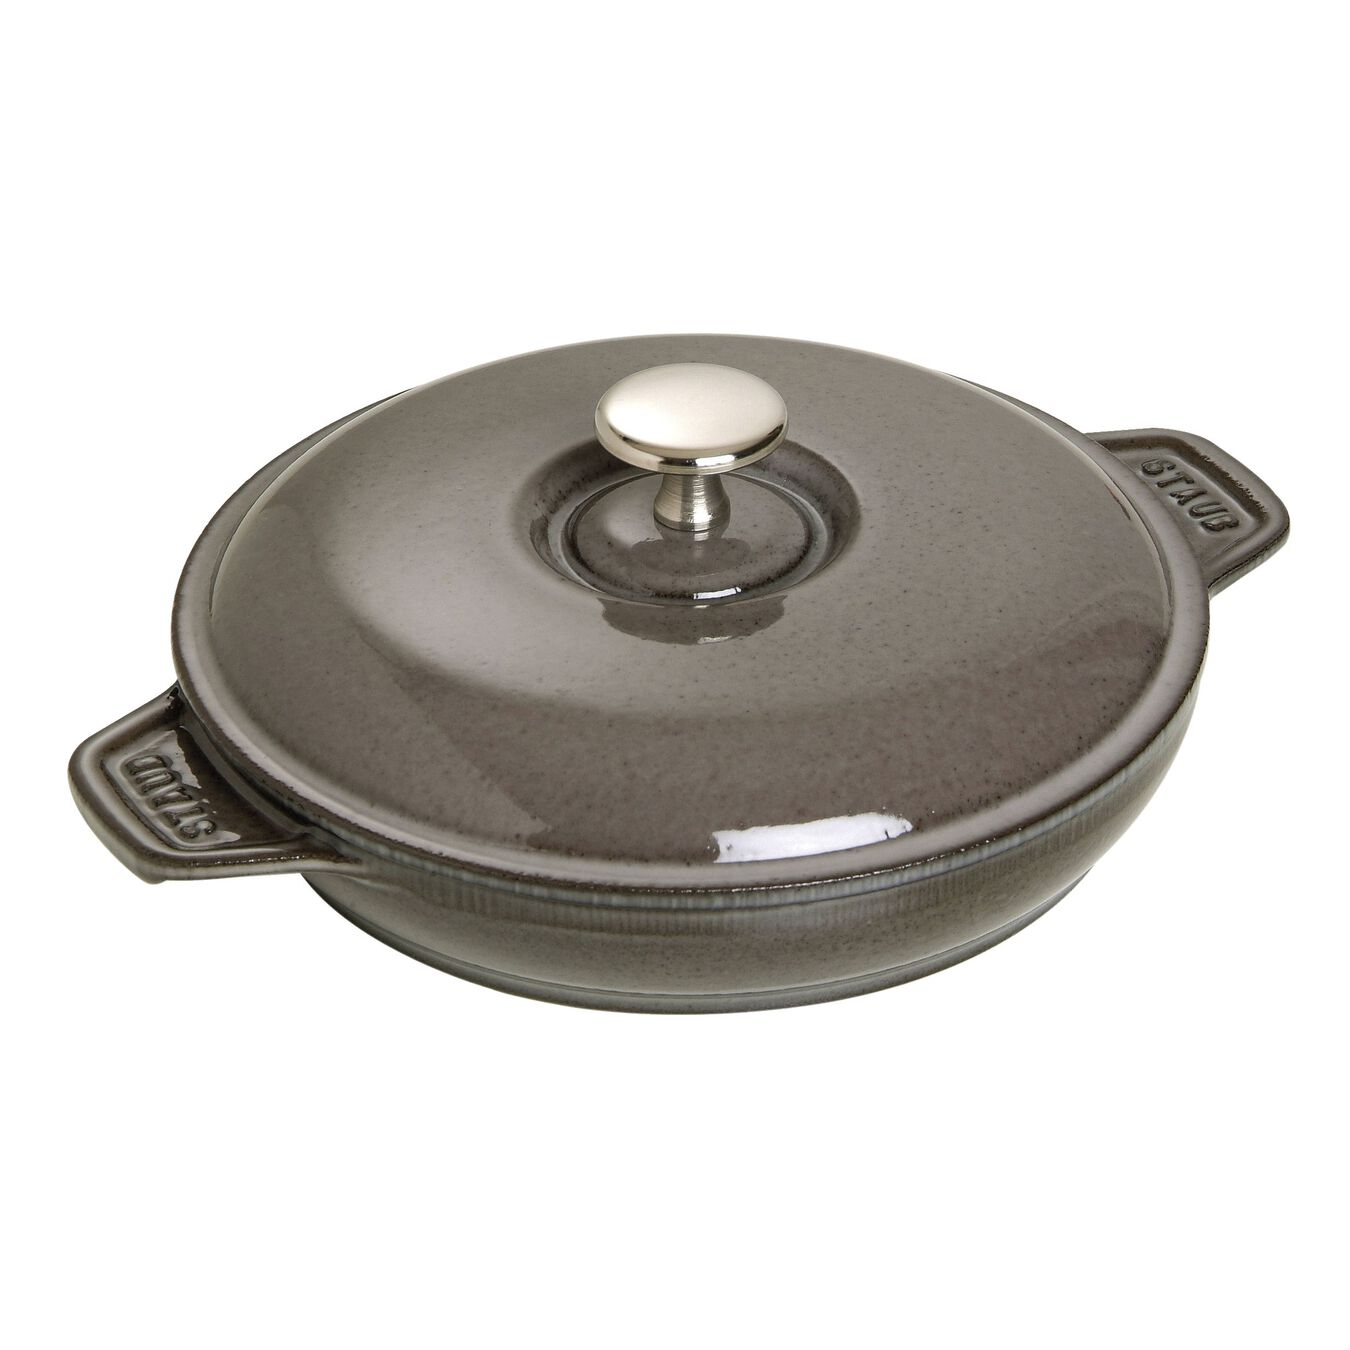 7.9-inch Round Covered Baking Dish - Graphite Grey,,large 1